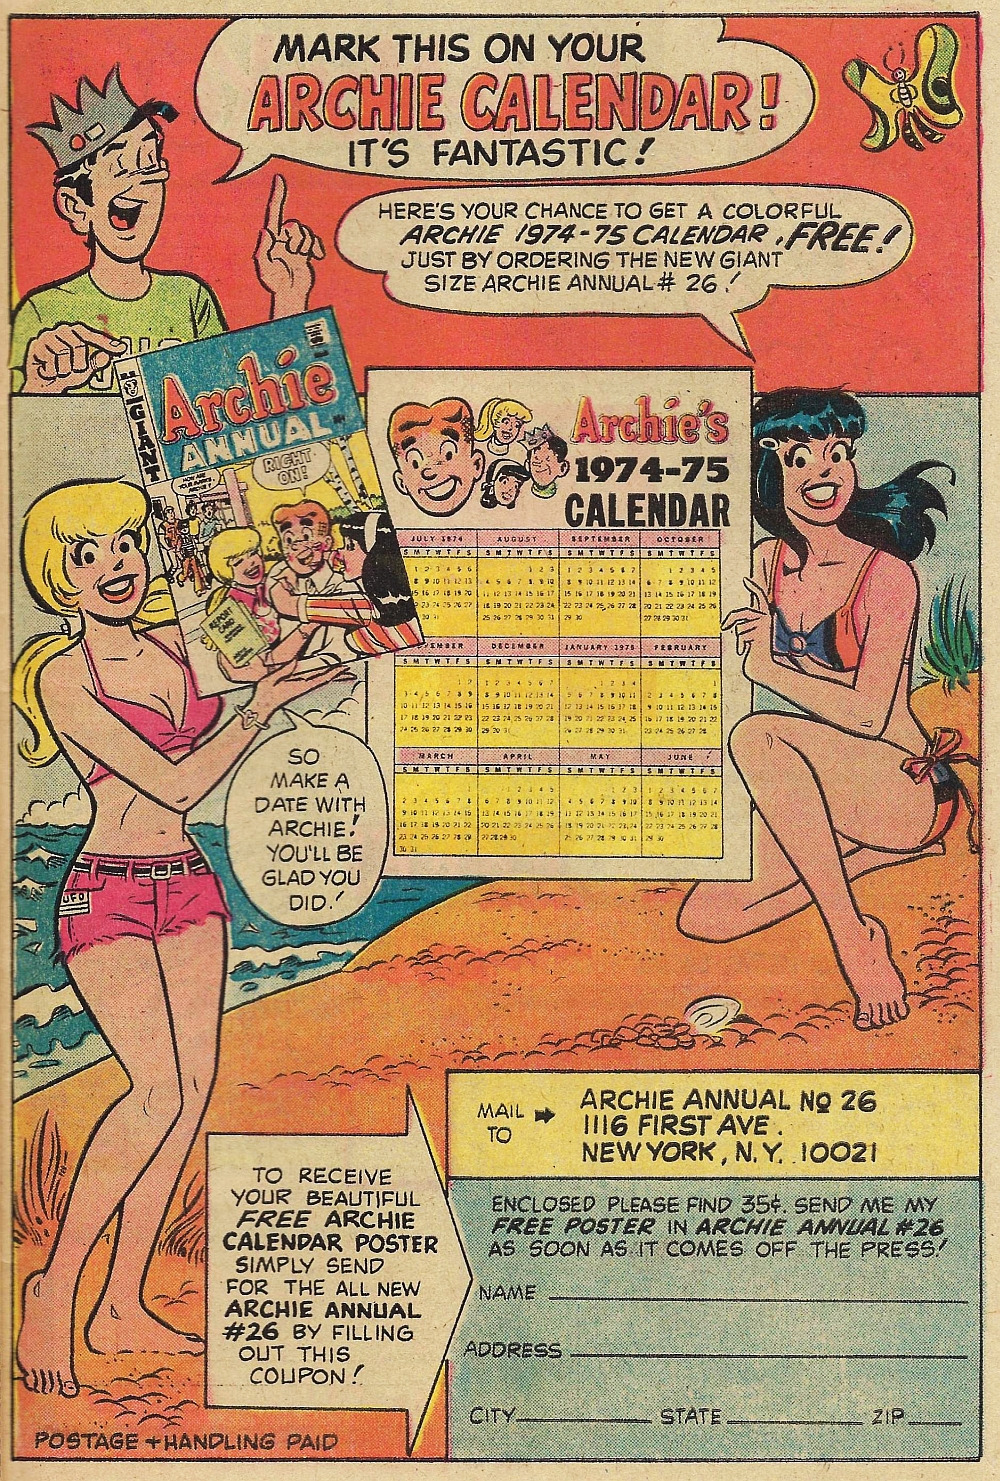 Ad for Archie Annual #26 from Life With Archie #147